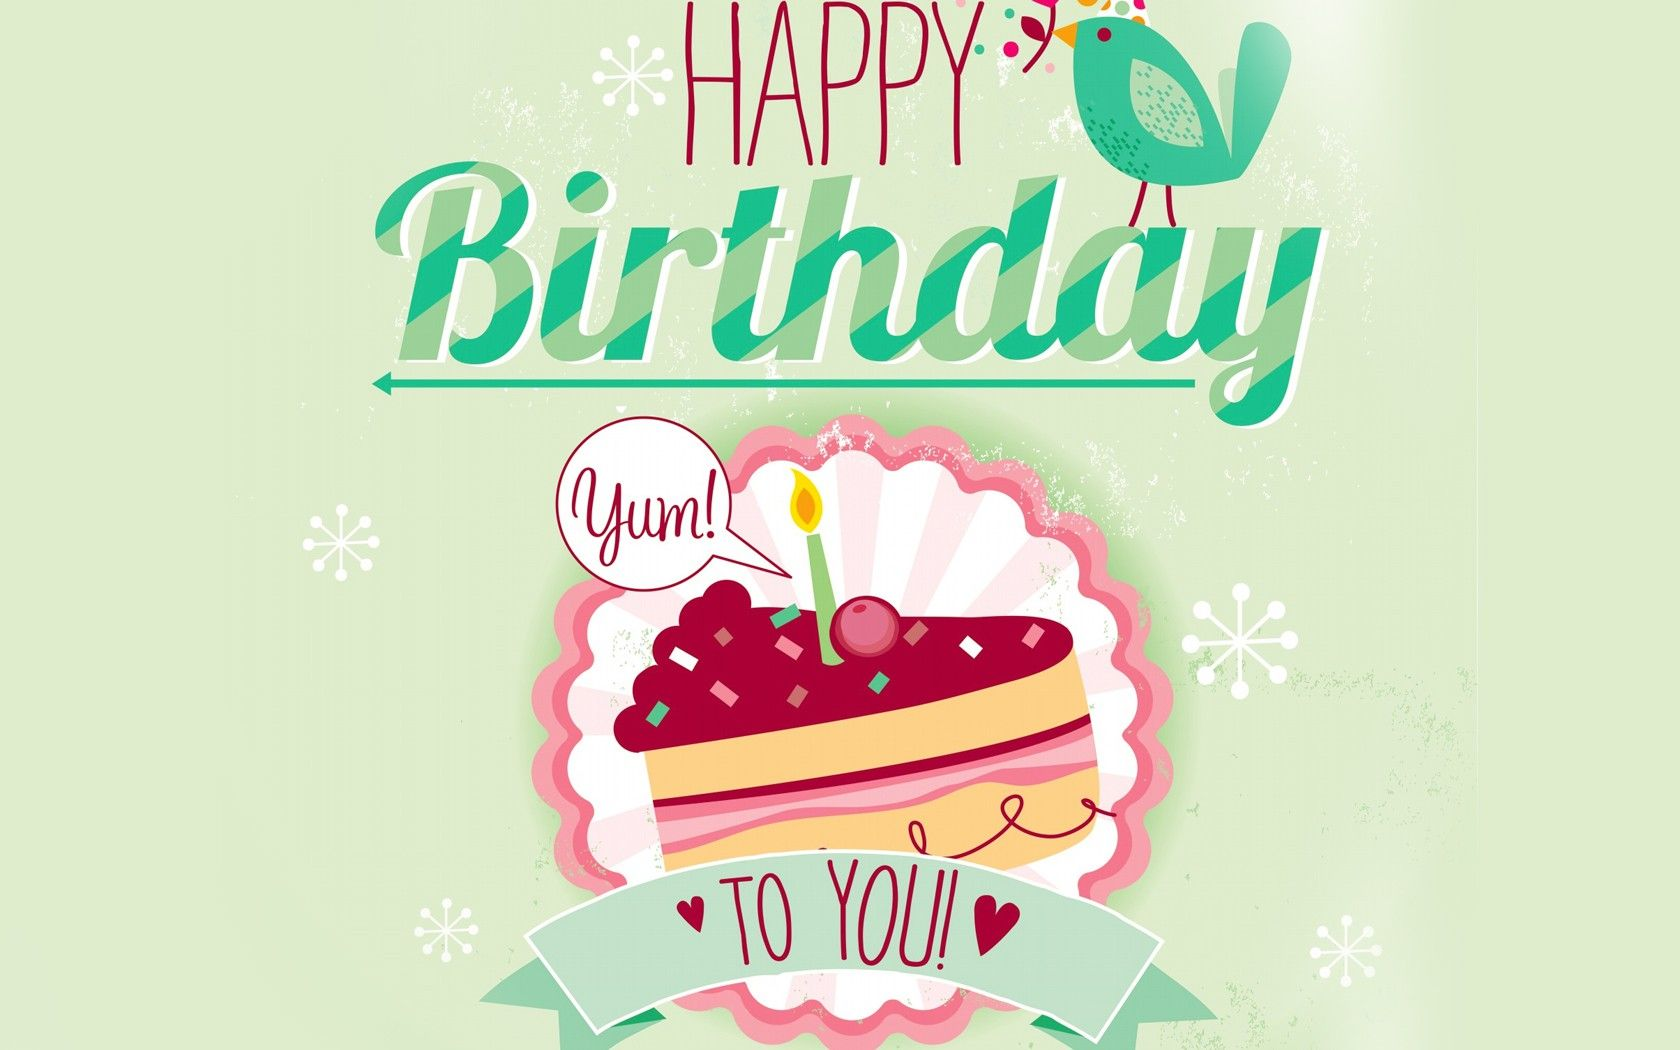 happy birthday to you images hd ; 1d6a0d1e123af291e162fe426c68b128